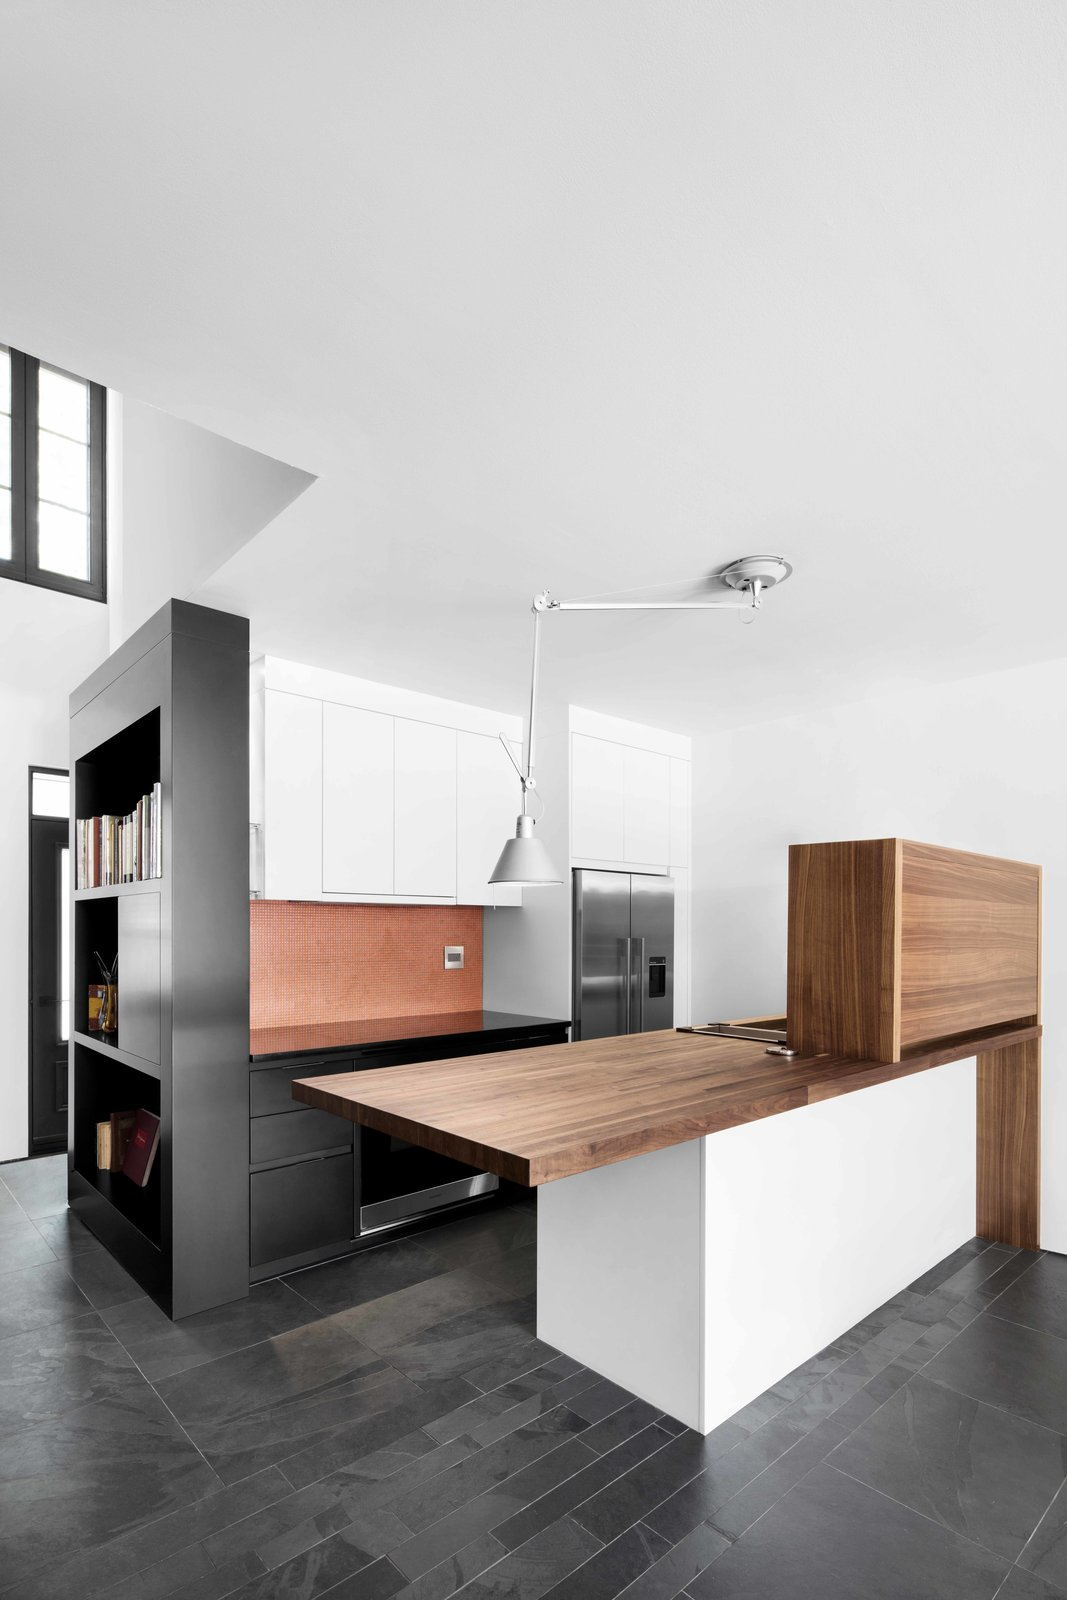 A short wall on the kitchen island hides clutter and keeps the straight lines of the design unmarred. Almost every lighting fixture, including the overhead Artemide Tolomeo light, is movable. The refrigerator and oven are from Fisher and Paykel. A Monochromatic Renovation for a 19th-Century Montreal Home - Photo 5 of 7